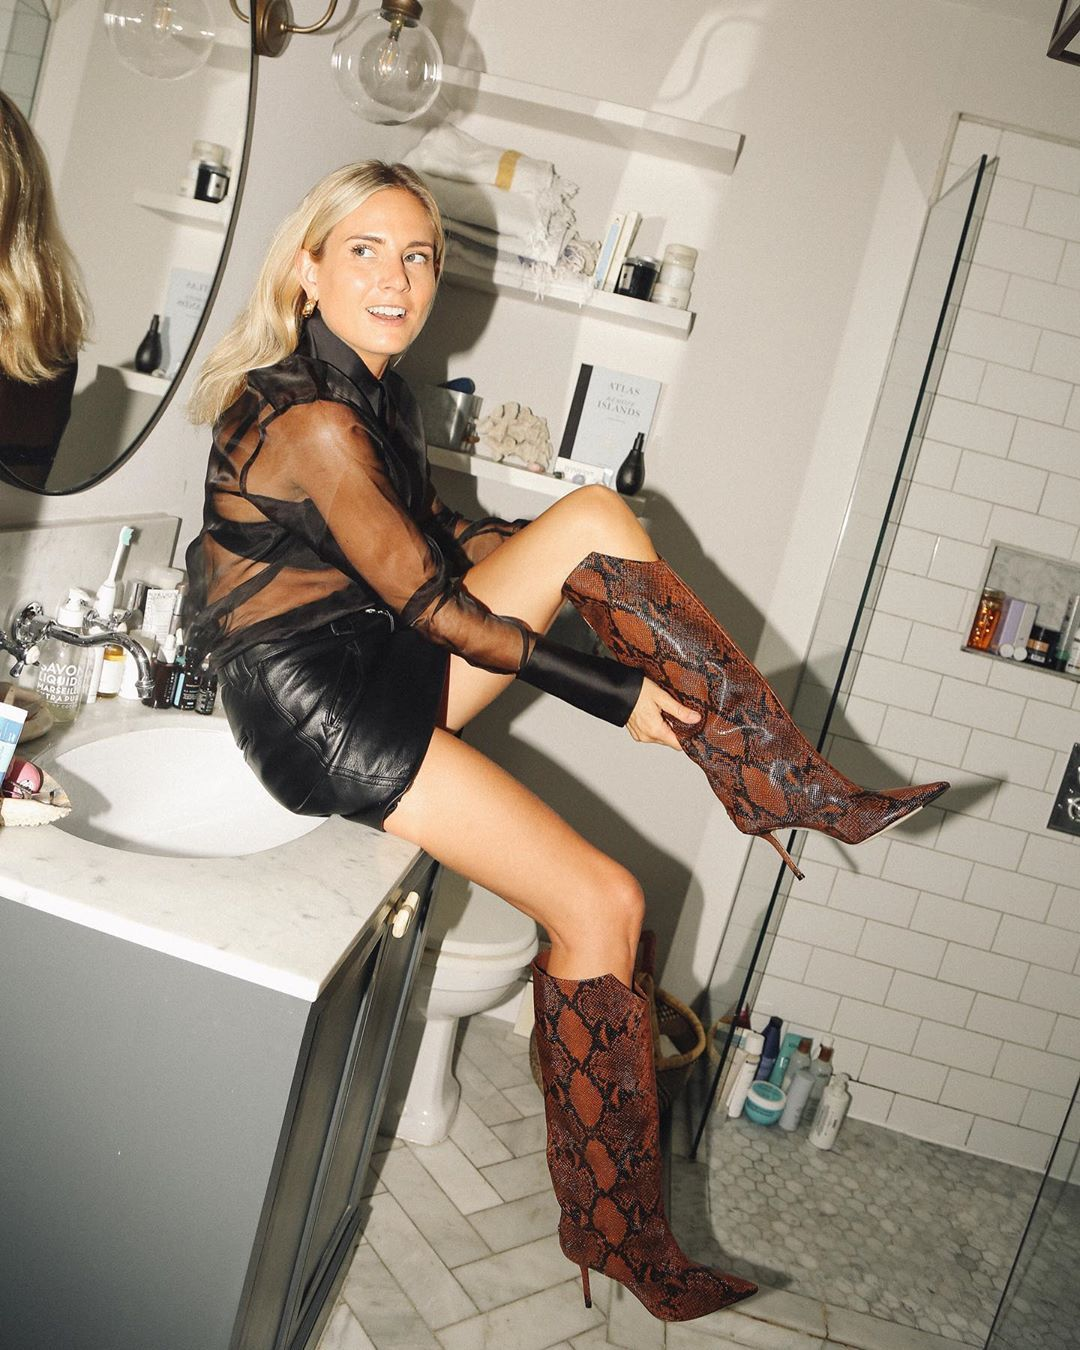 lucy-williams-jimmy-choo-brelan-85-snake-effect-boots-instagram